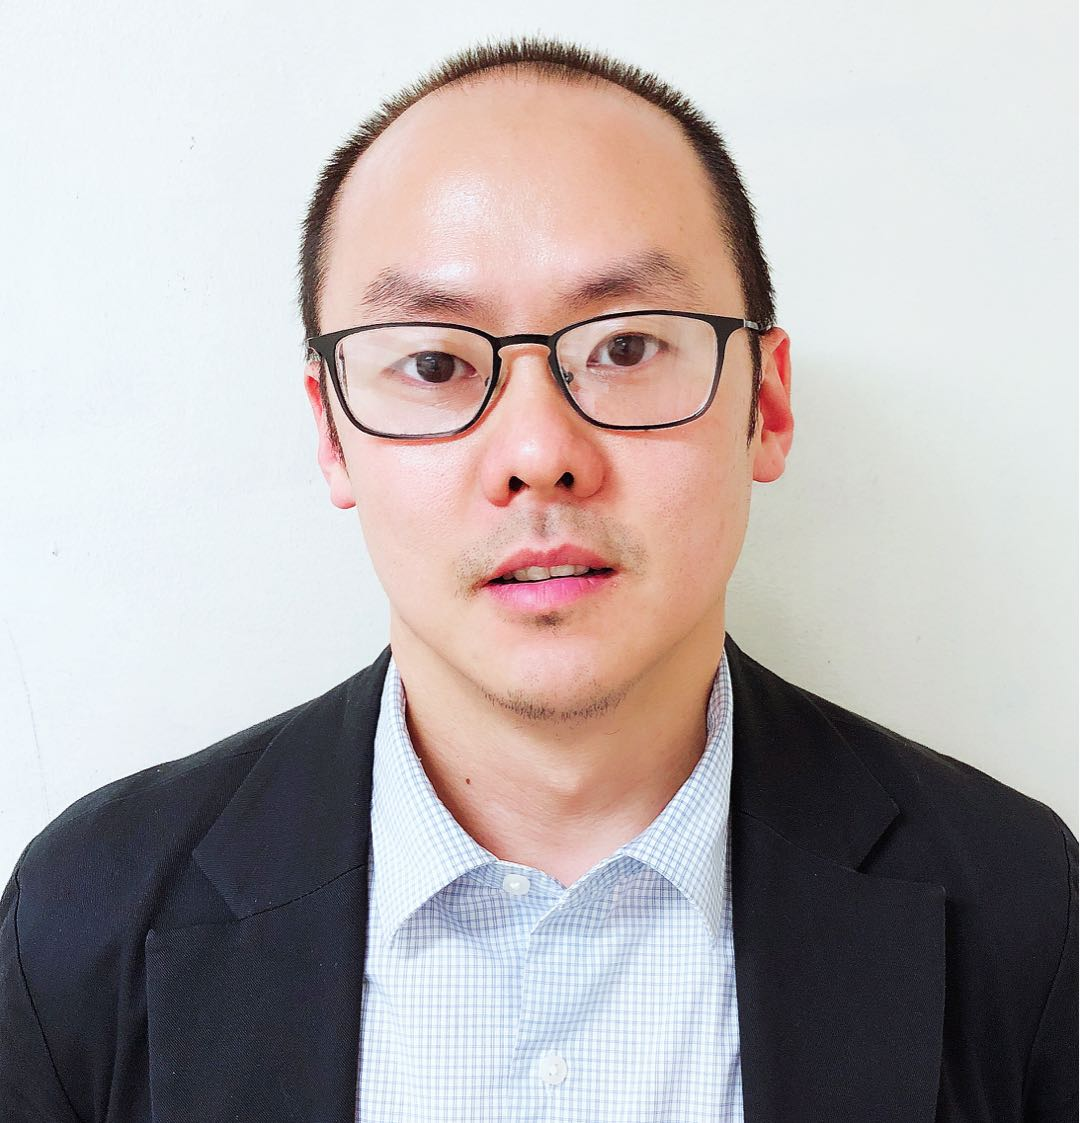 Jae    SAT & ACT Teacher   He graduated from Yale University and is an expert in teaching SAT/ACT ELA and Math.